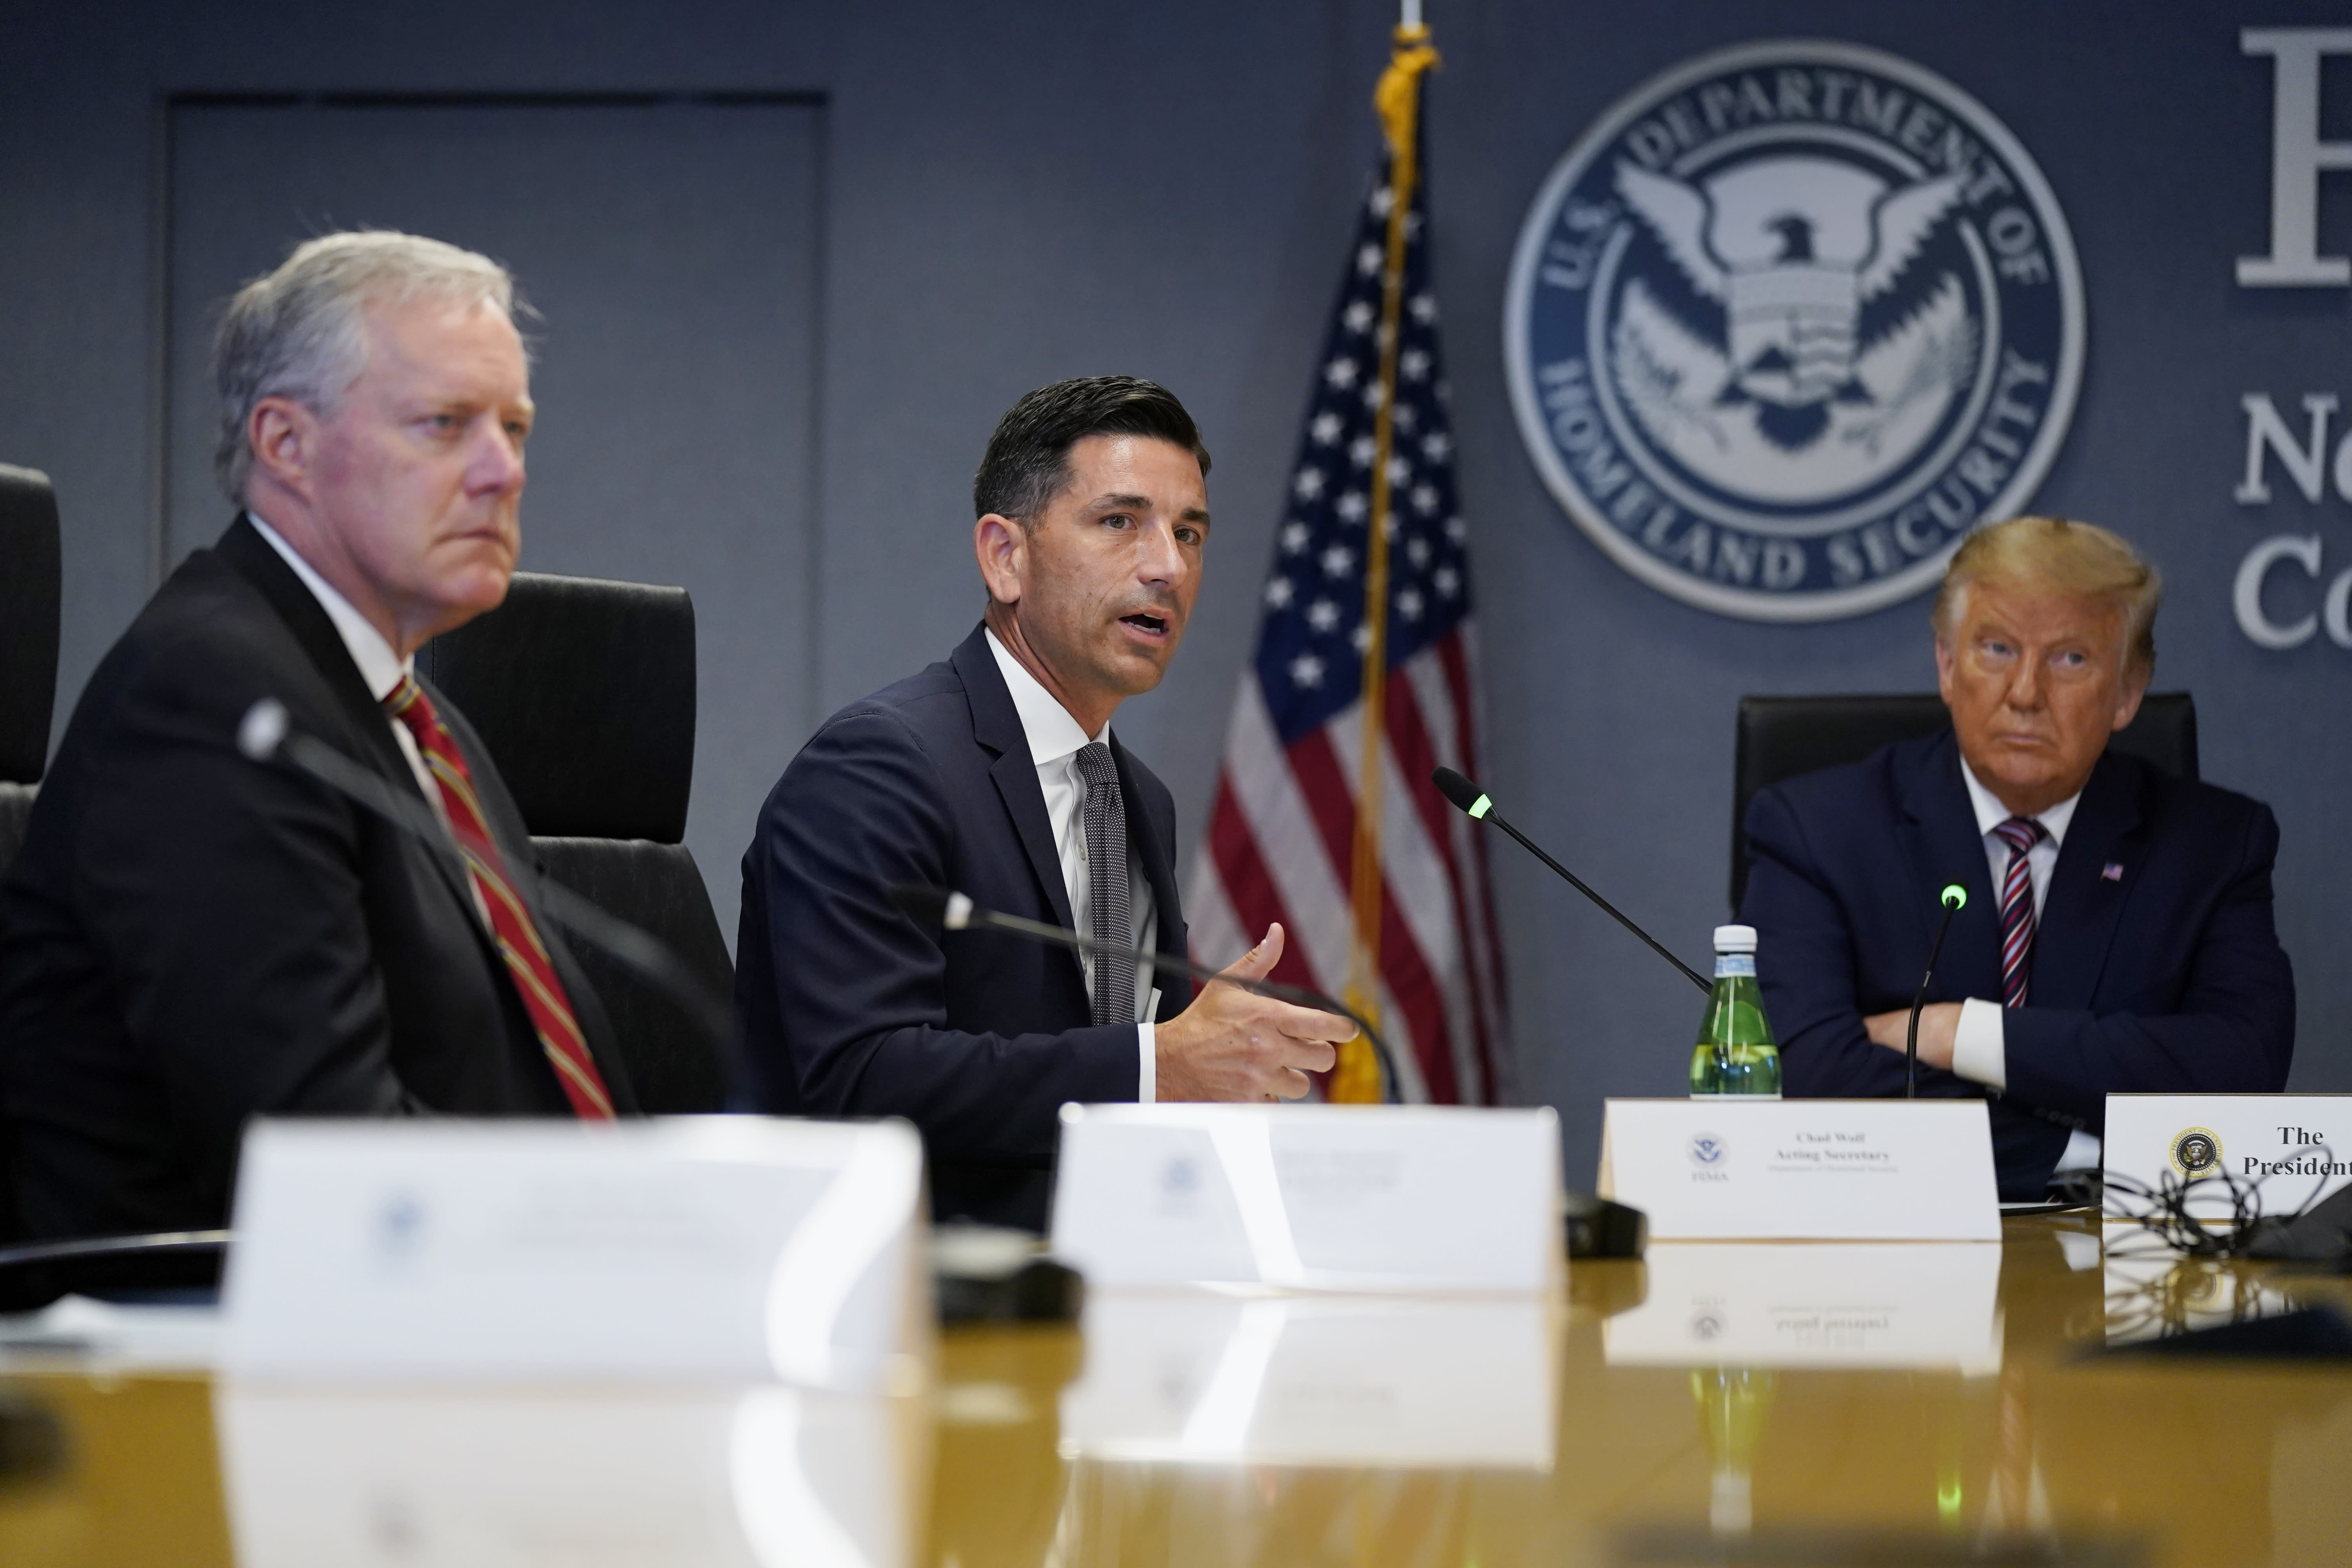 White House chief of staff Mark Meadows, left, and President Donald Trump listen as Acting Secretary of Homeland Security Chad Wolf speaks during a Hurricane Laura briefing at FEMA headquarters, Thursday, Aug. 27, 2020, in Washington. (AP Photo/Evan Vucci)